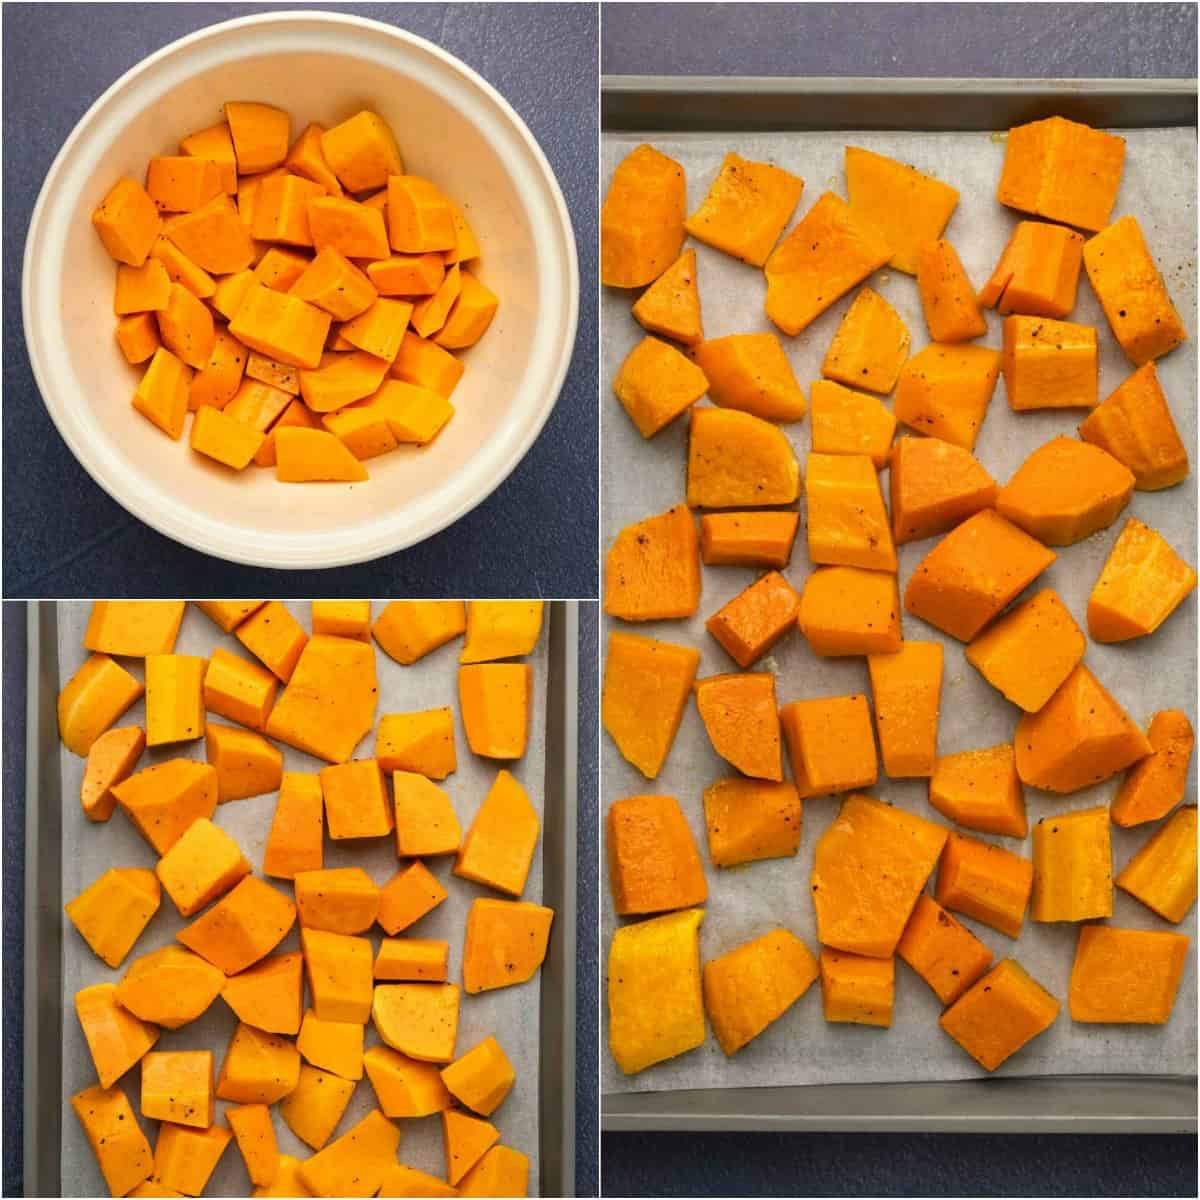 Step by step process photo collage of roasting butternut squash.